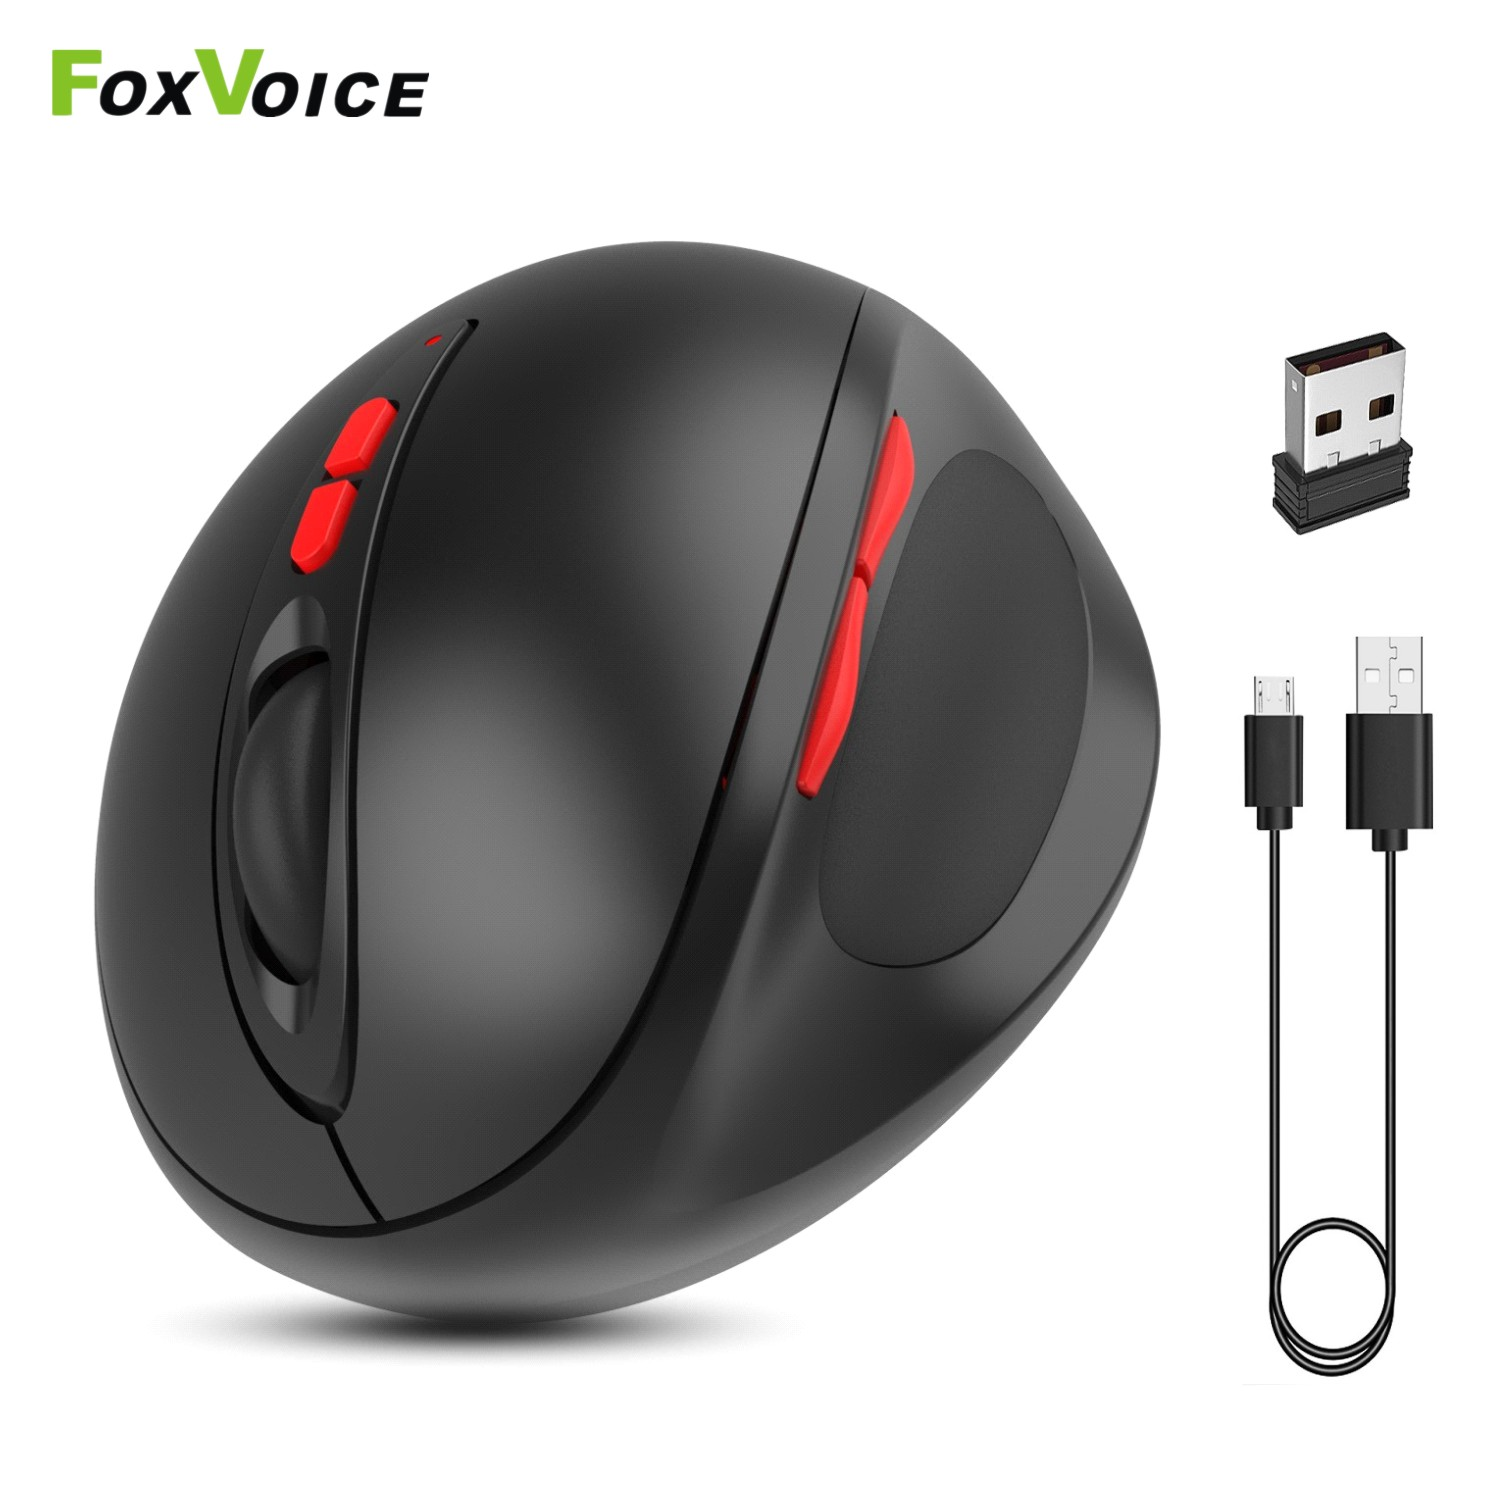 Gamer Gaming Wireless Mouse Vertical Ergonomic Rechargeable Mause USB 7 Key Magic Mouse For PC Laptop Notebook Computer Desktop